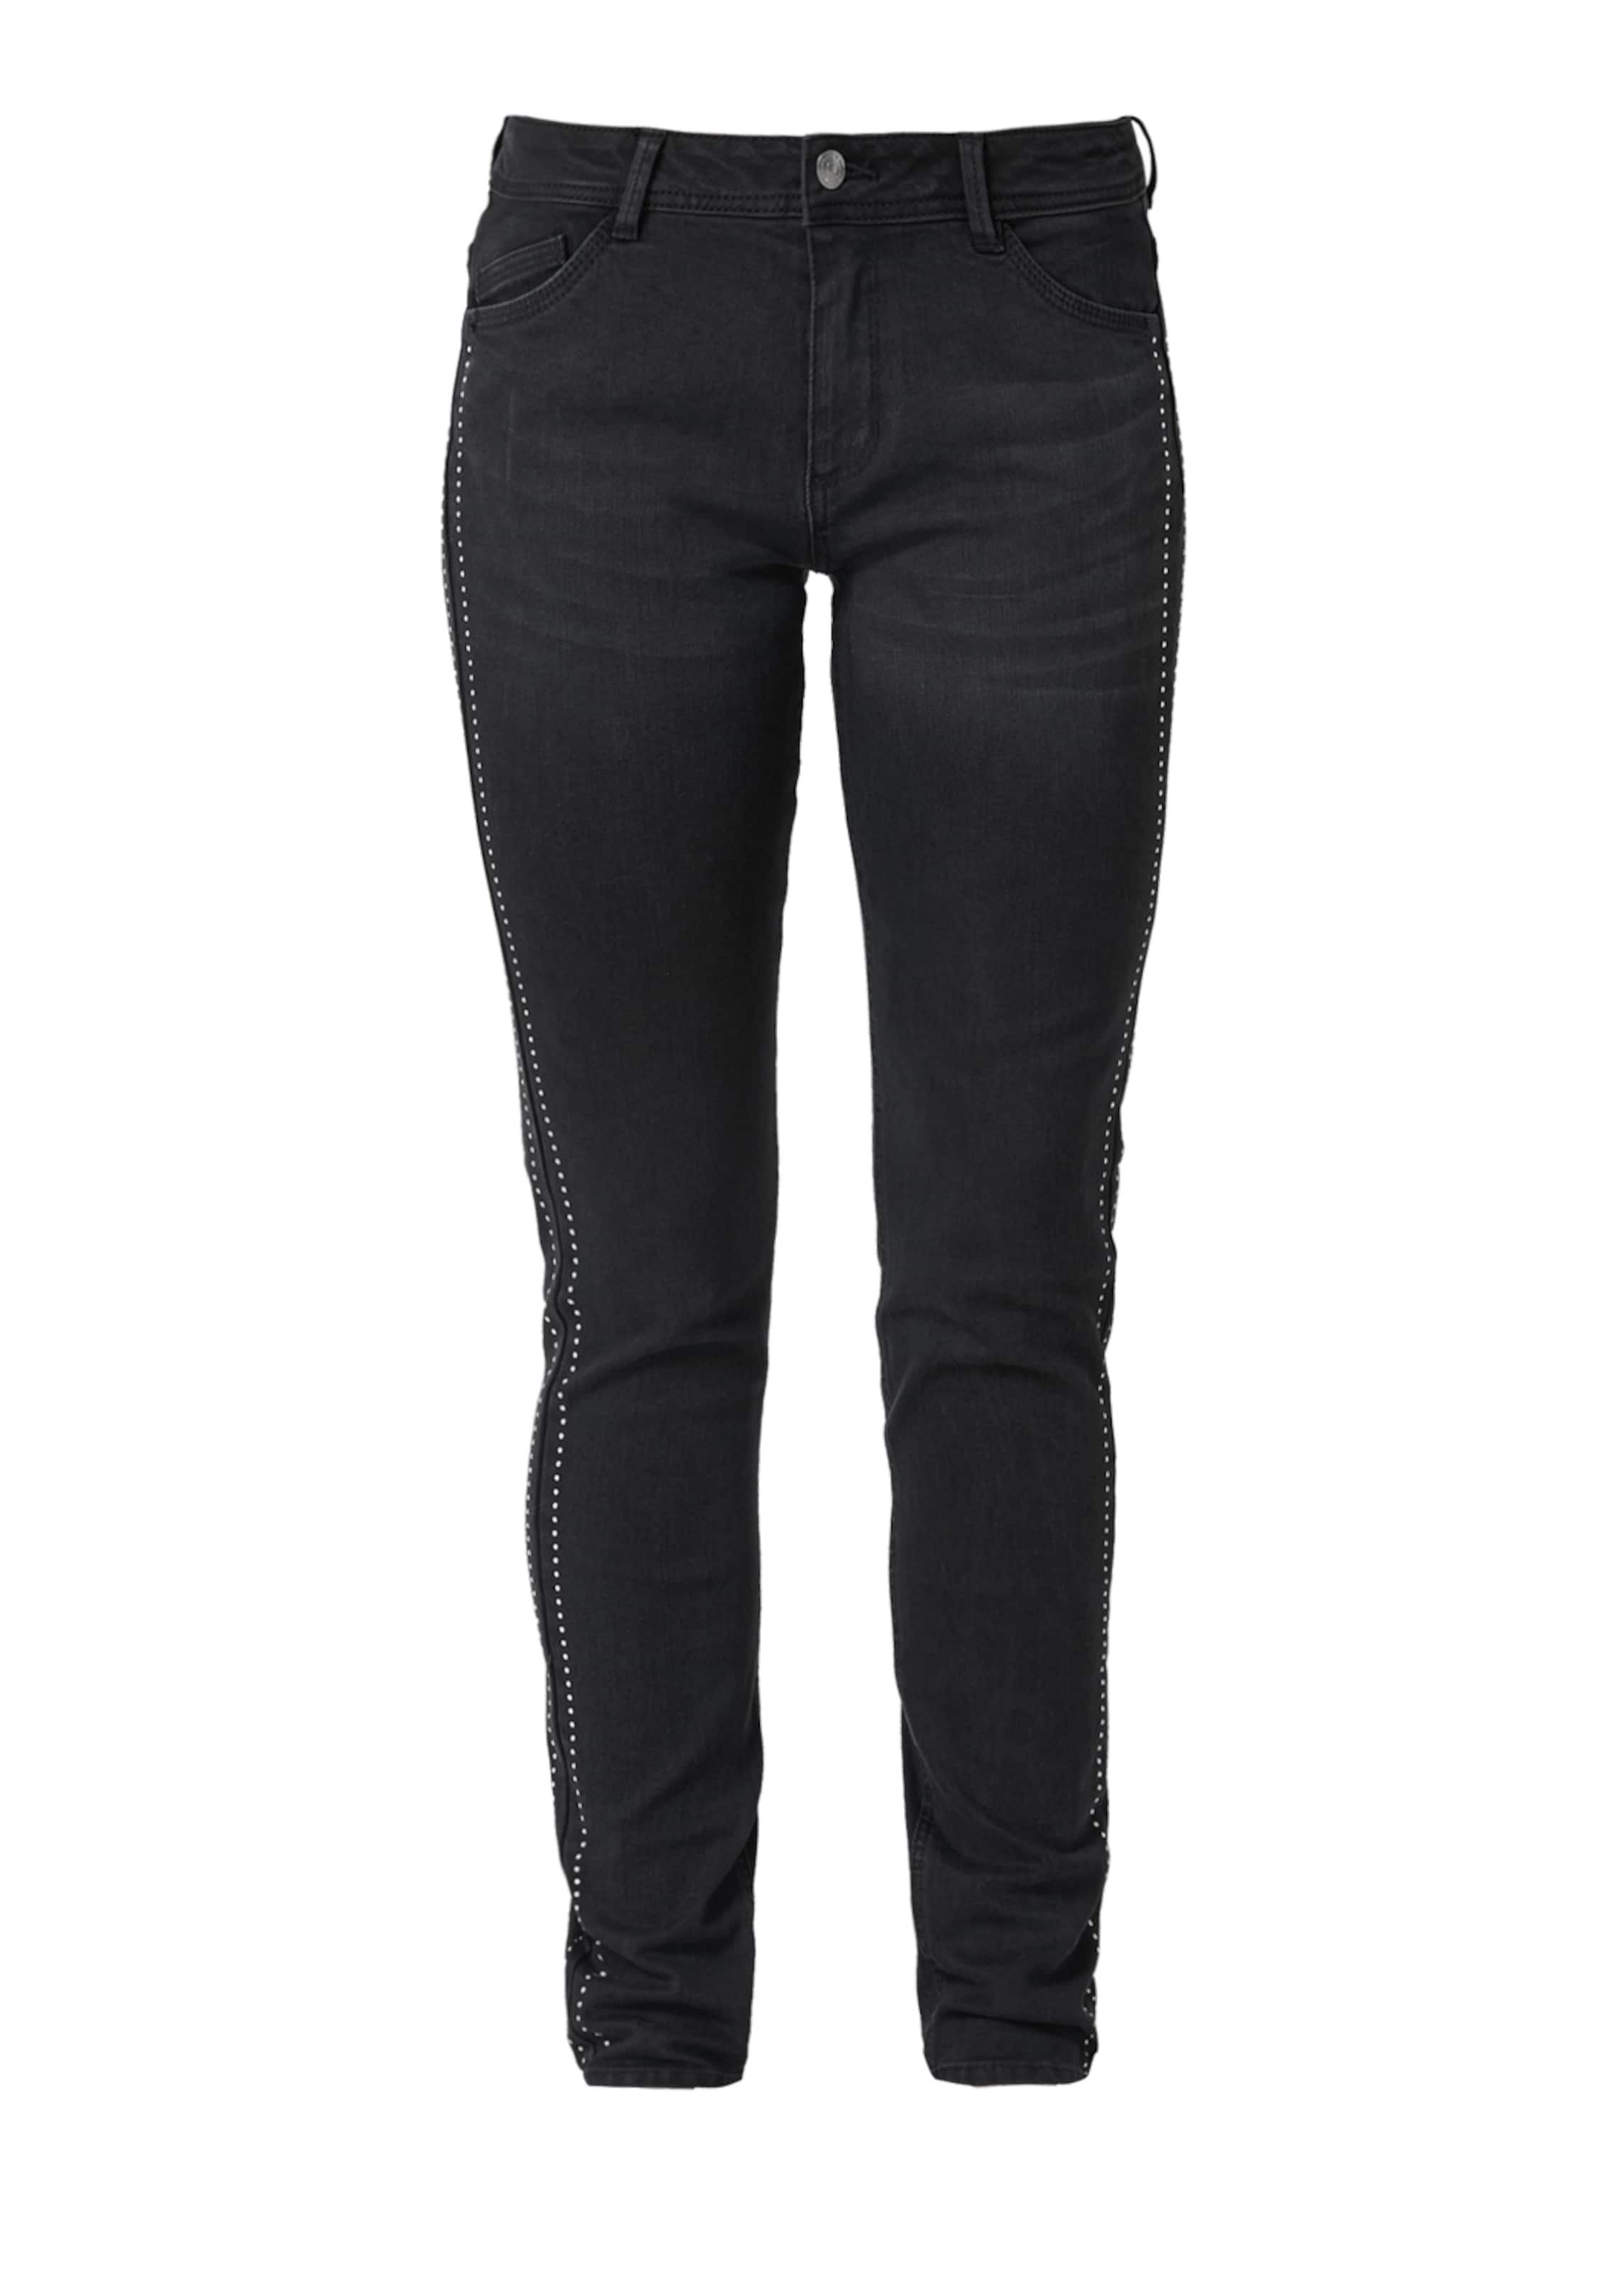 S oliver Jeans Denim Black In SUzqMGVp